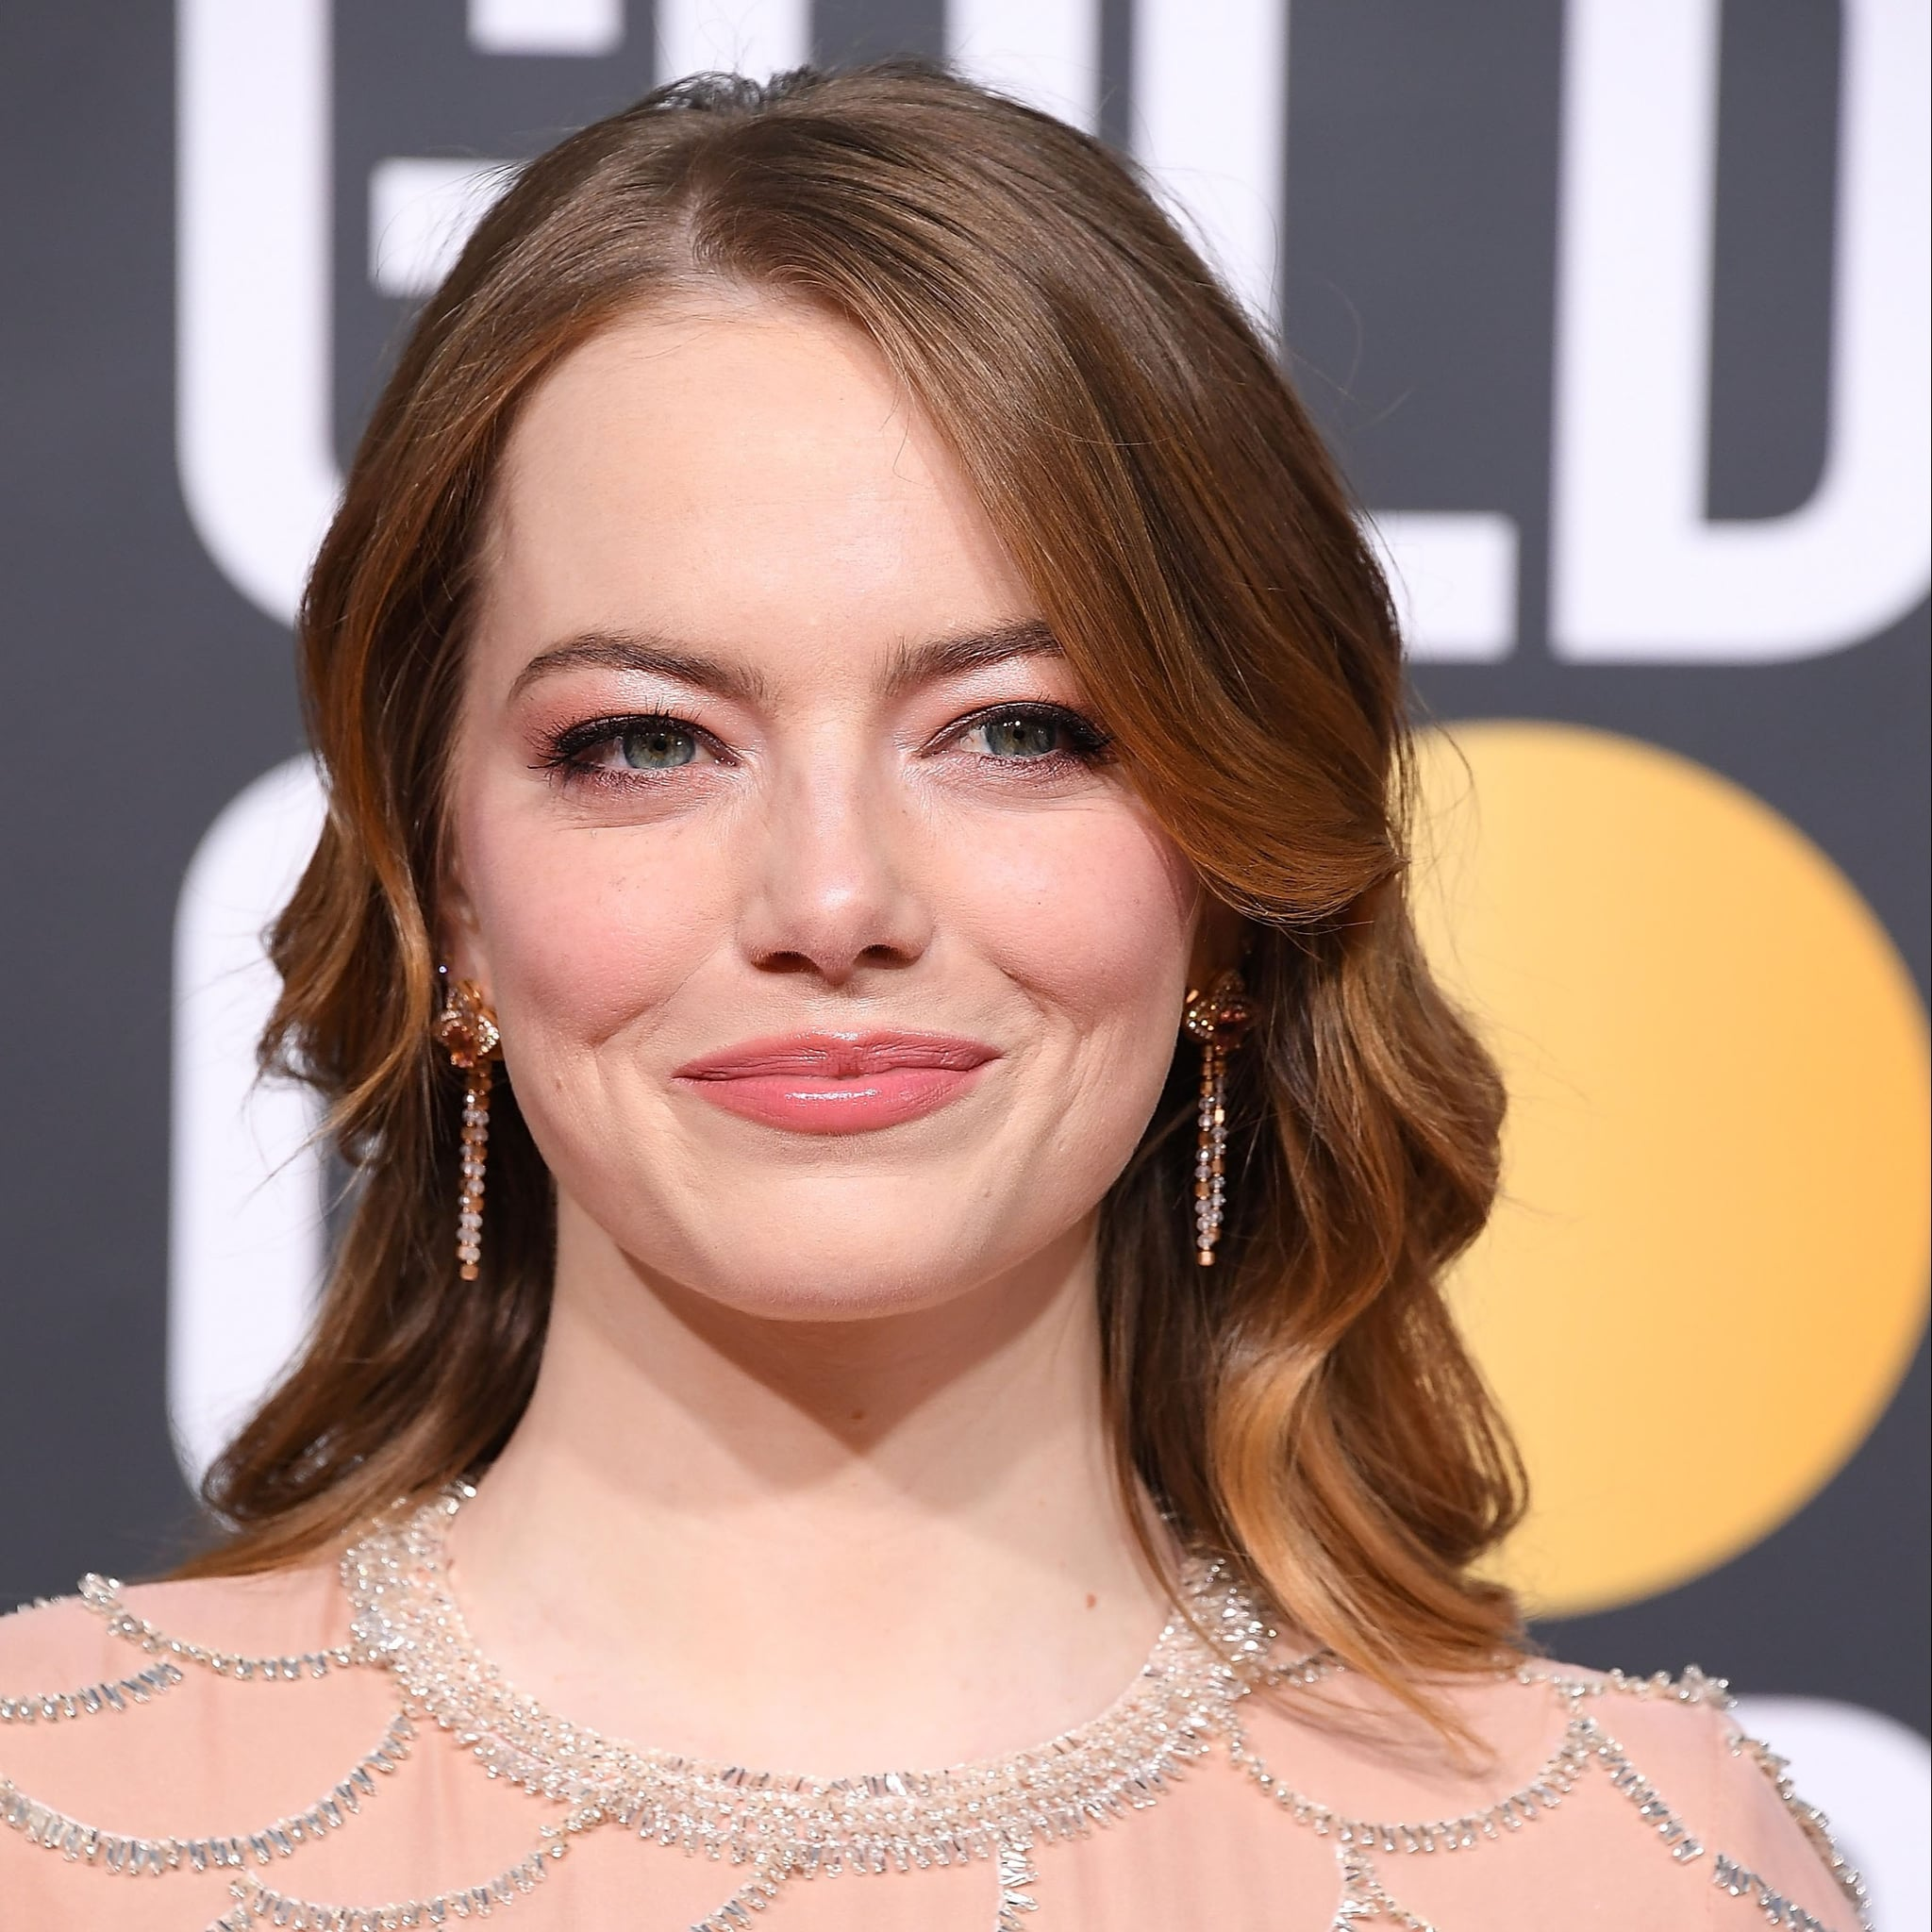 You are Emma stone hair does not